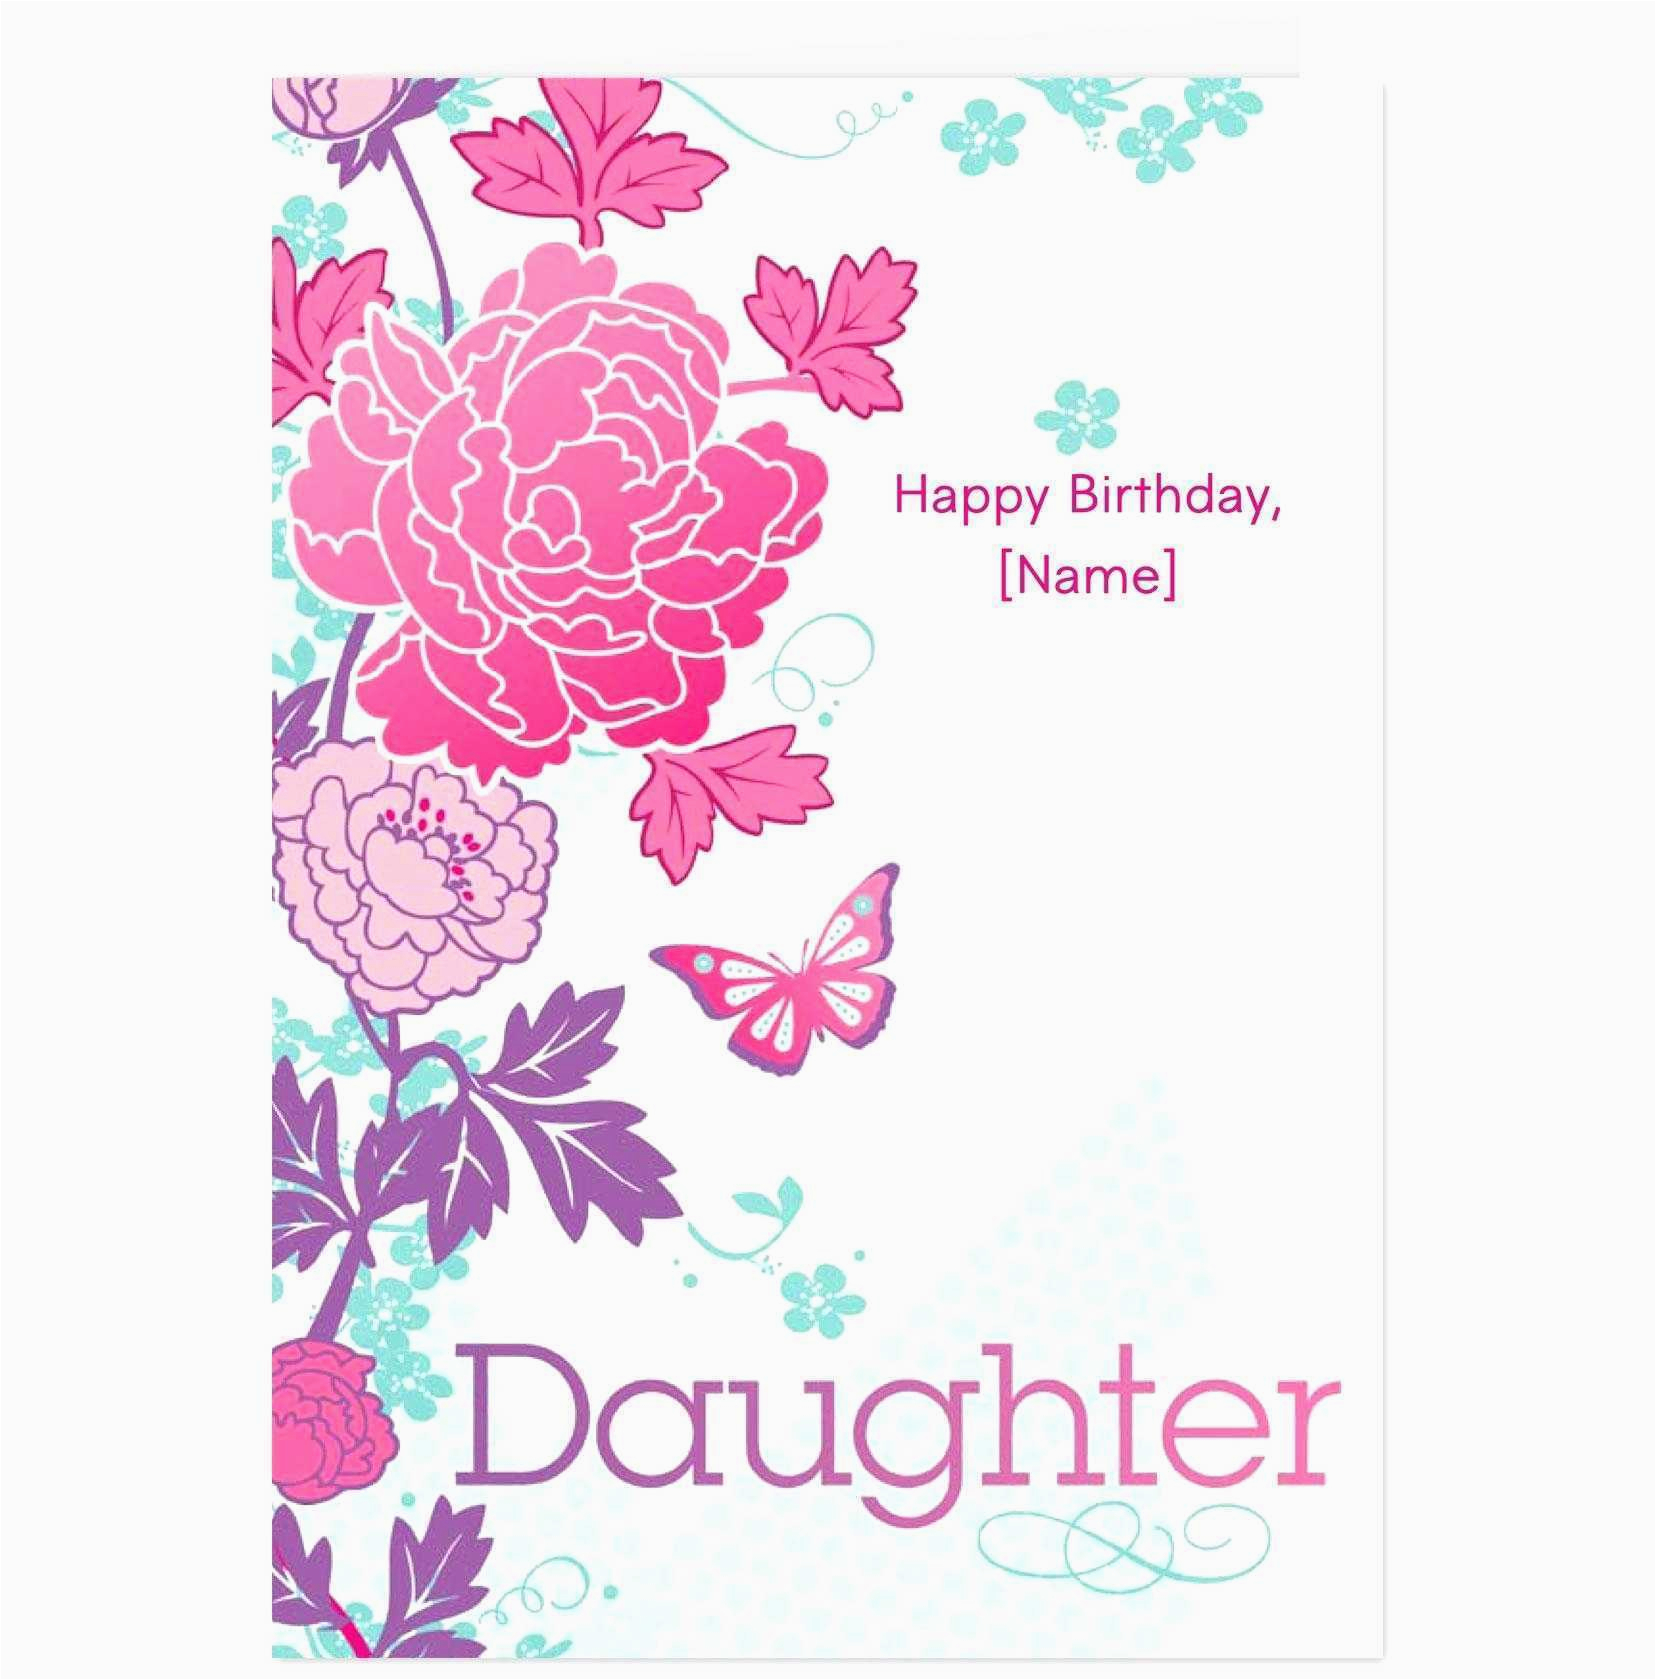 11 beautiful birthday cards for daughters pics free